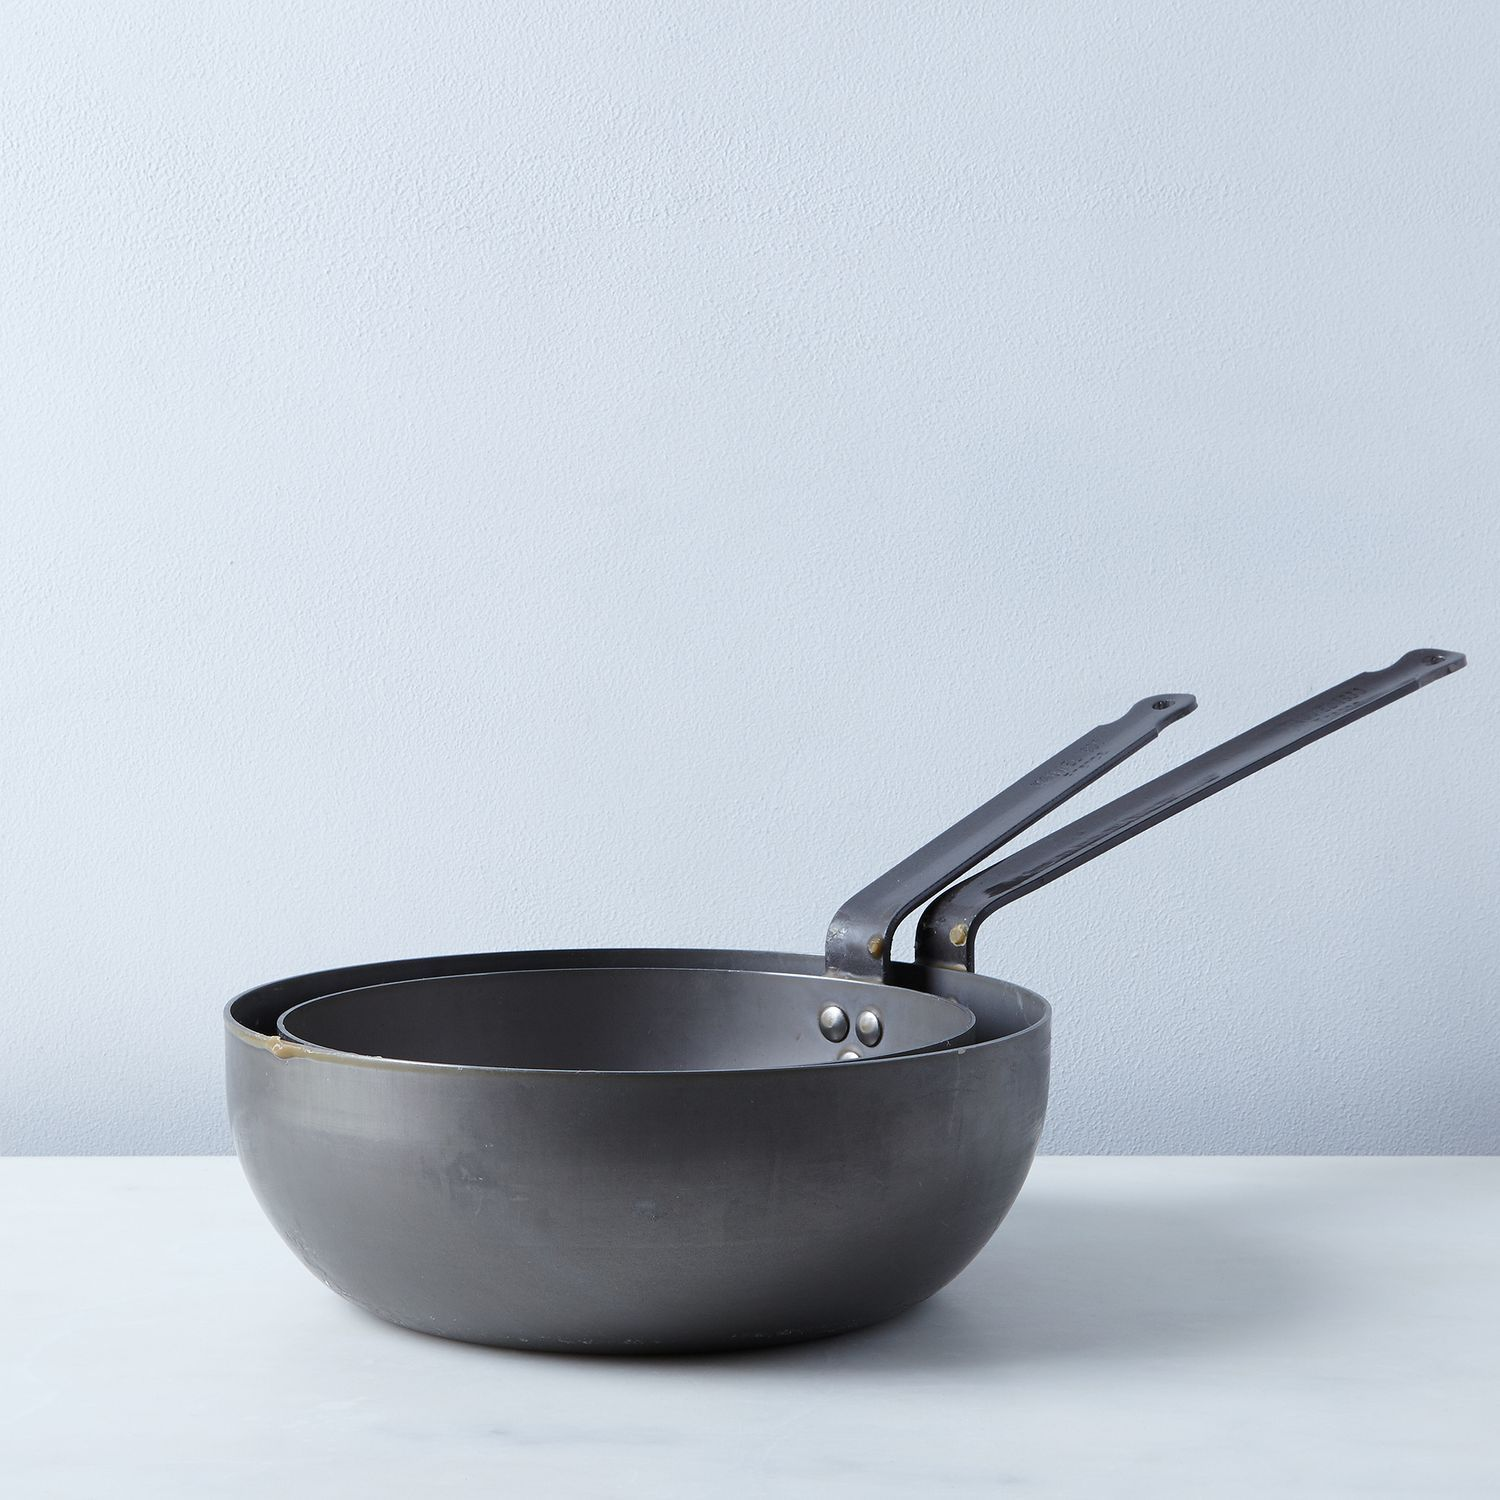 Mauviel M'steel Splayed Curved Sauté Pan on Food52